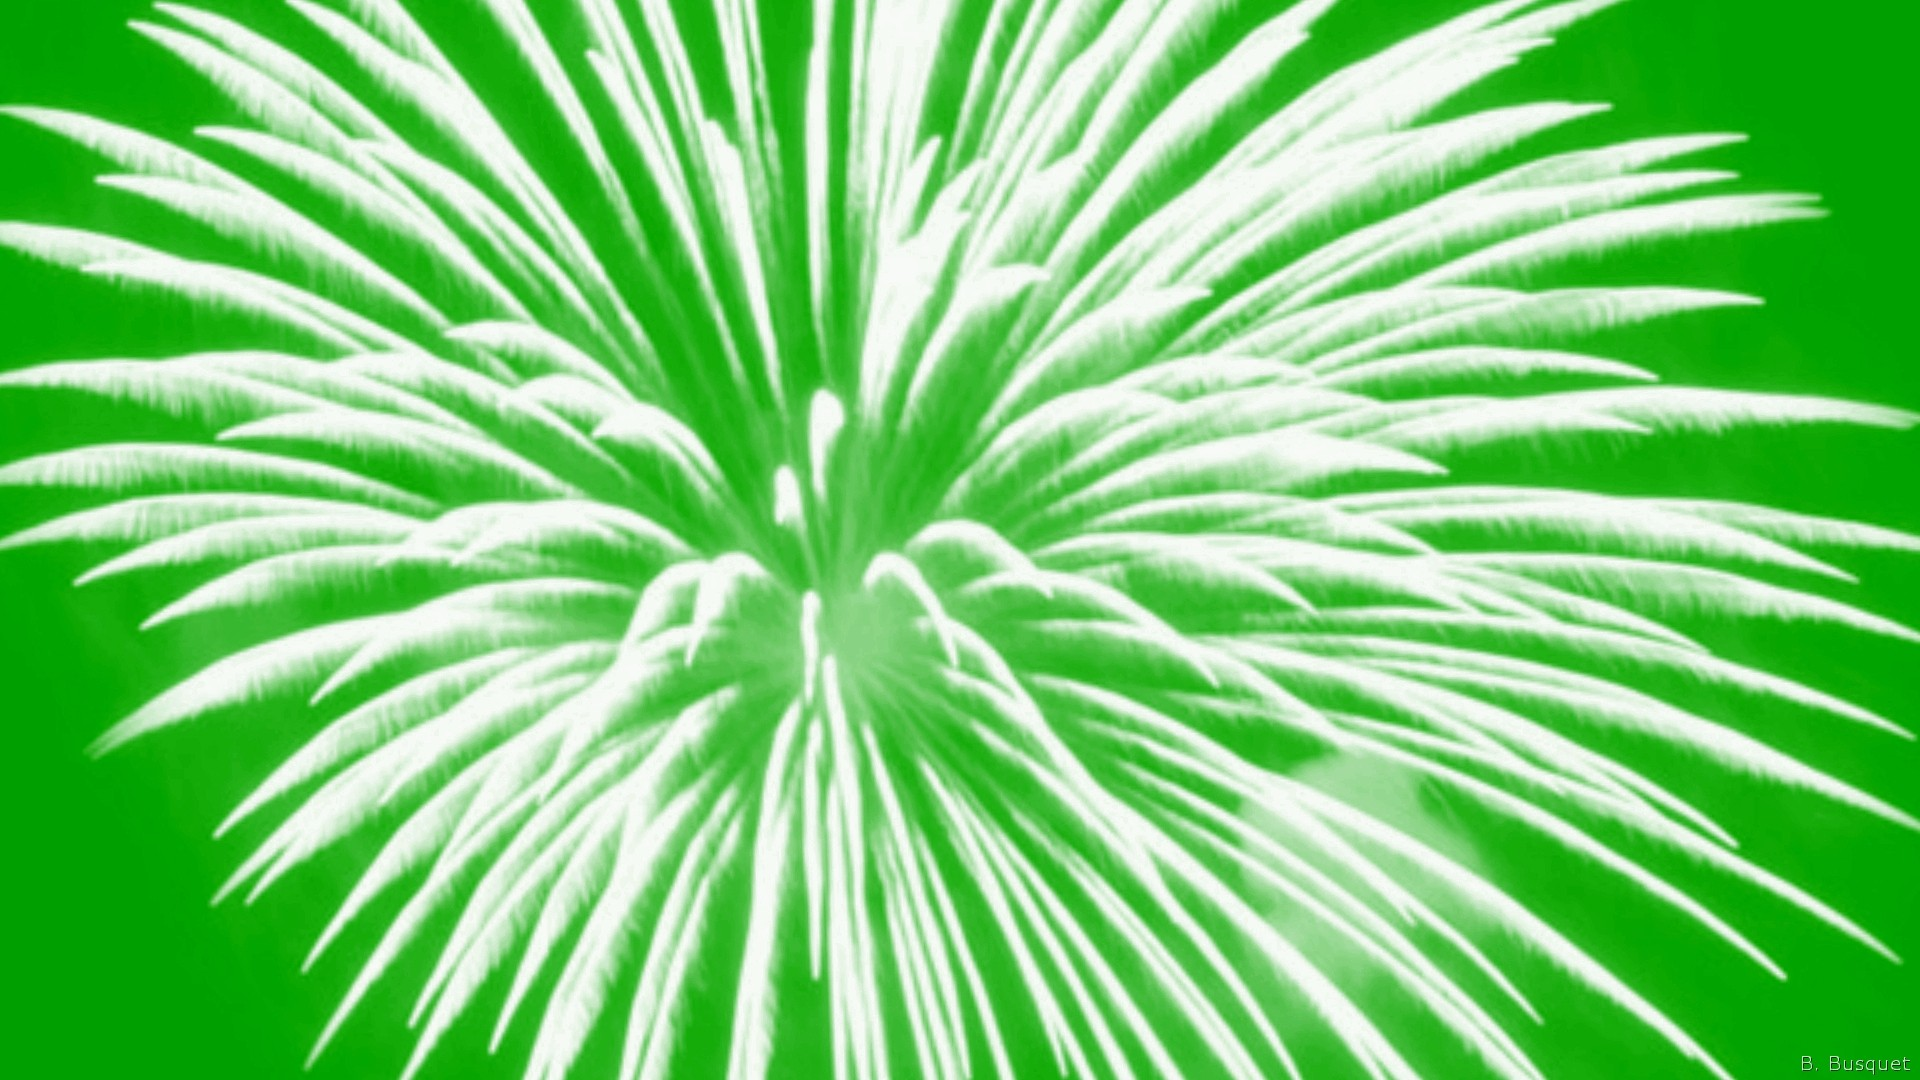 Green Fireworks Wallpaper | www.imgkid.com - The Image Kid ...